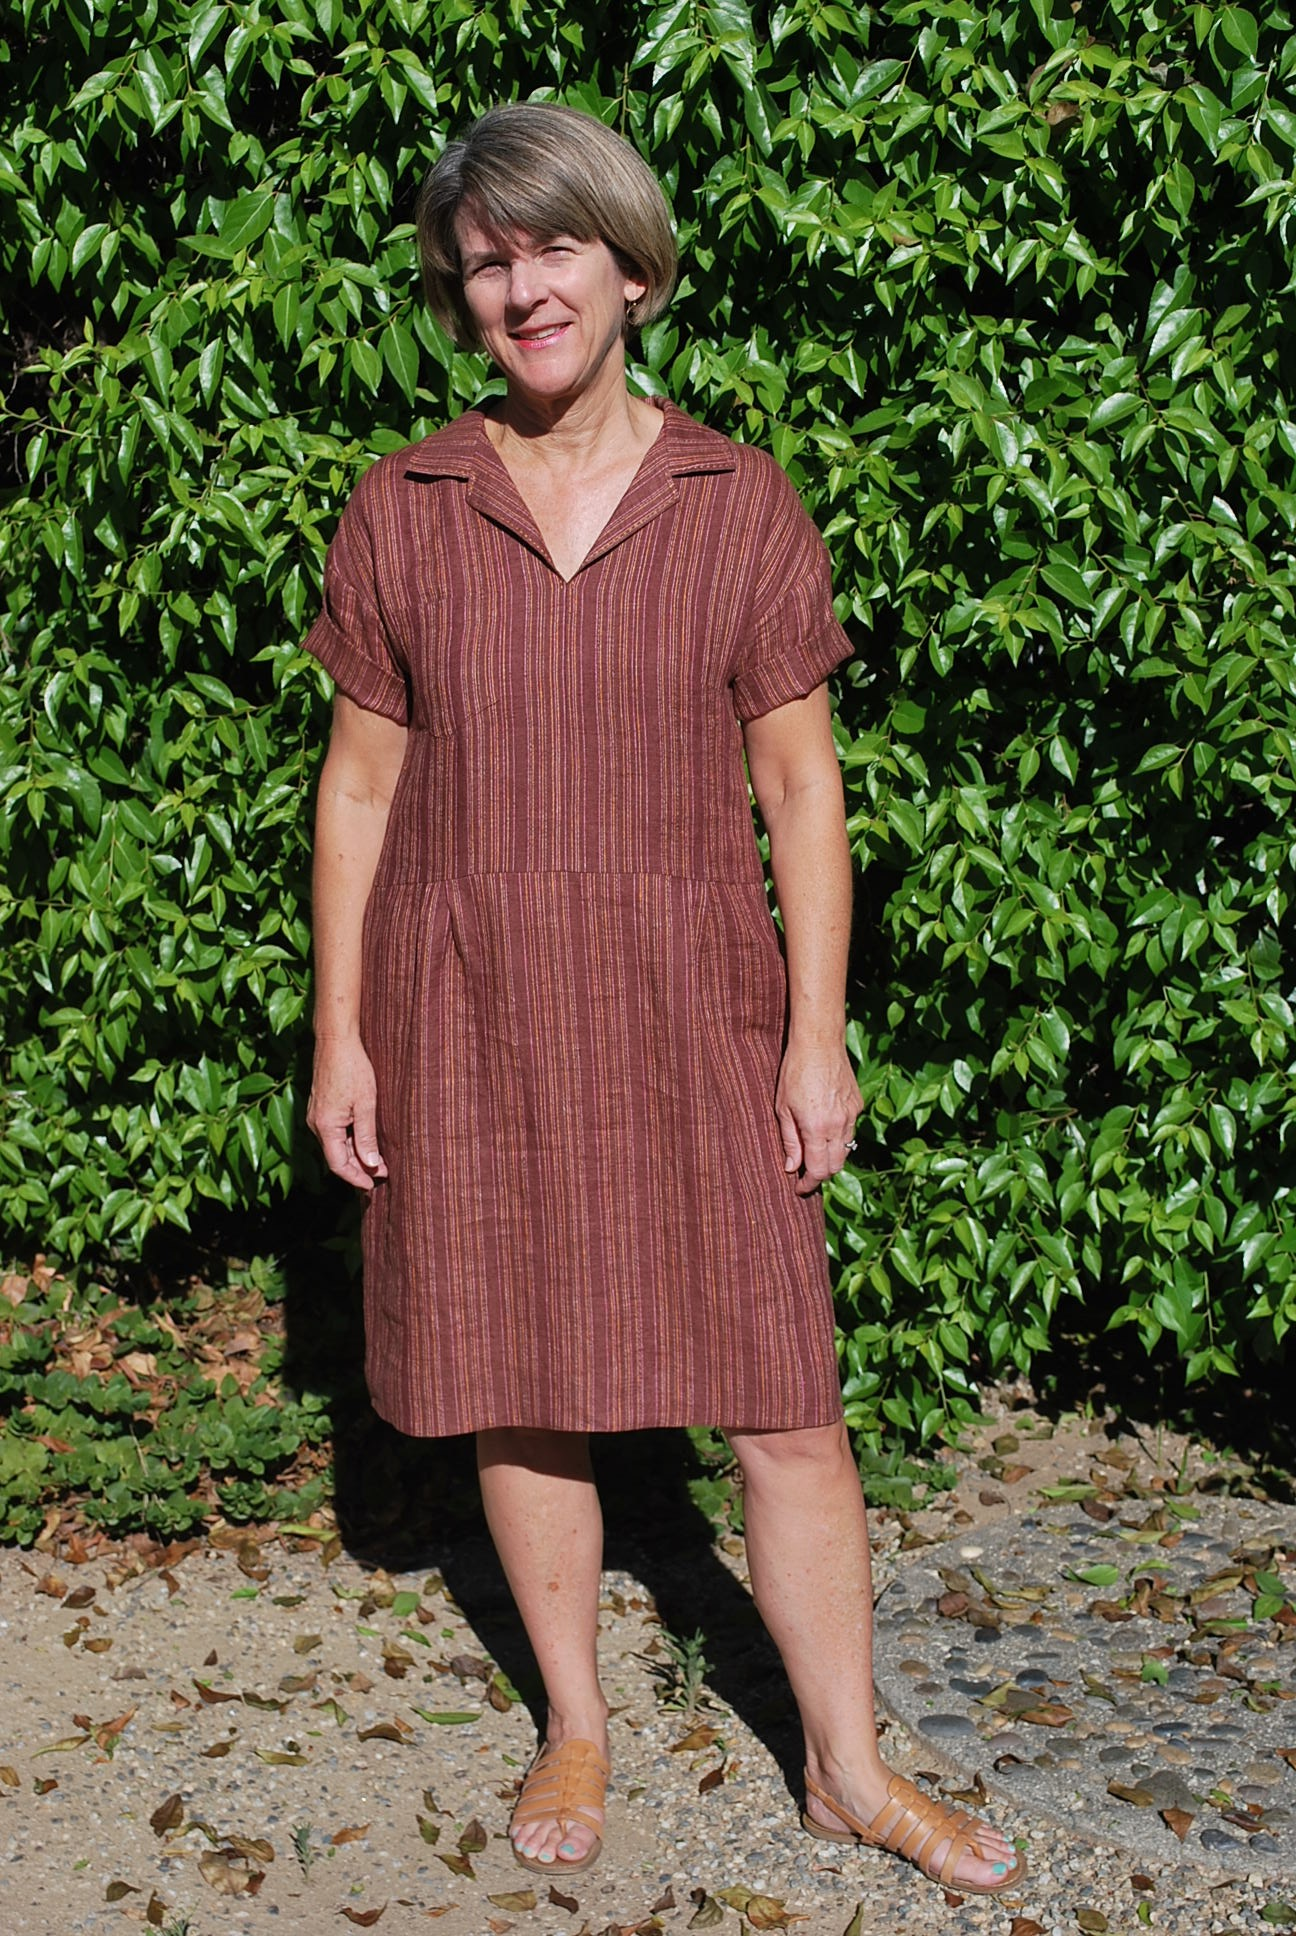 The factory dress sewing myself stylish when i calculated that it would cost me approximately 46 to purchase a pattern directly from the uk solutioingenieria Image collections